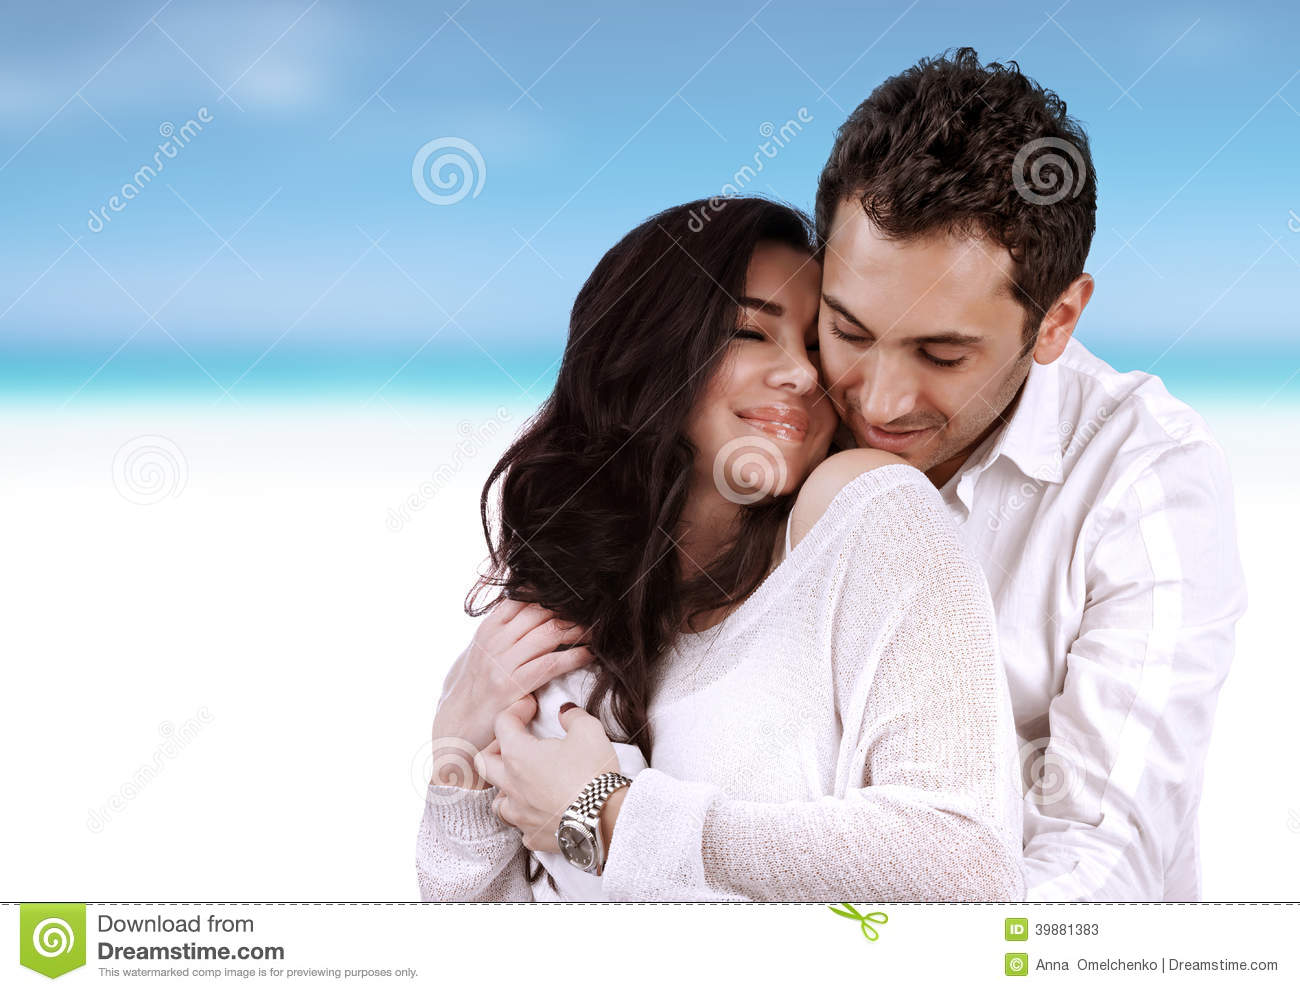 Stock Photos Romantic Honeymoon Holidays Two Beautiful Loving Couple H...